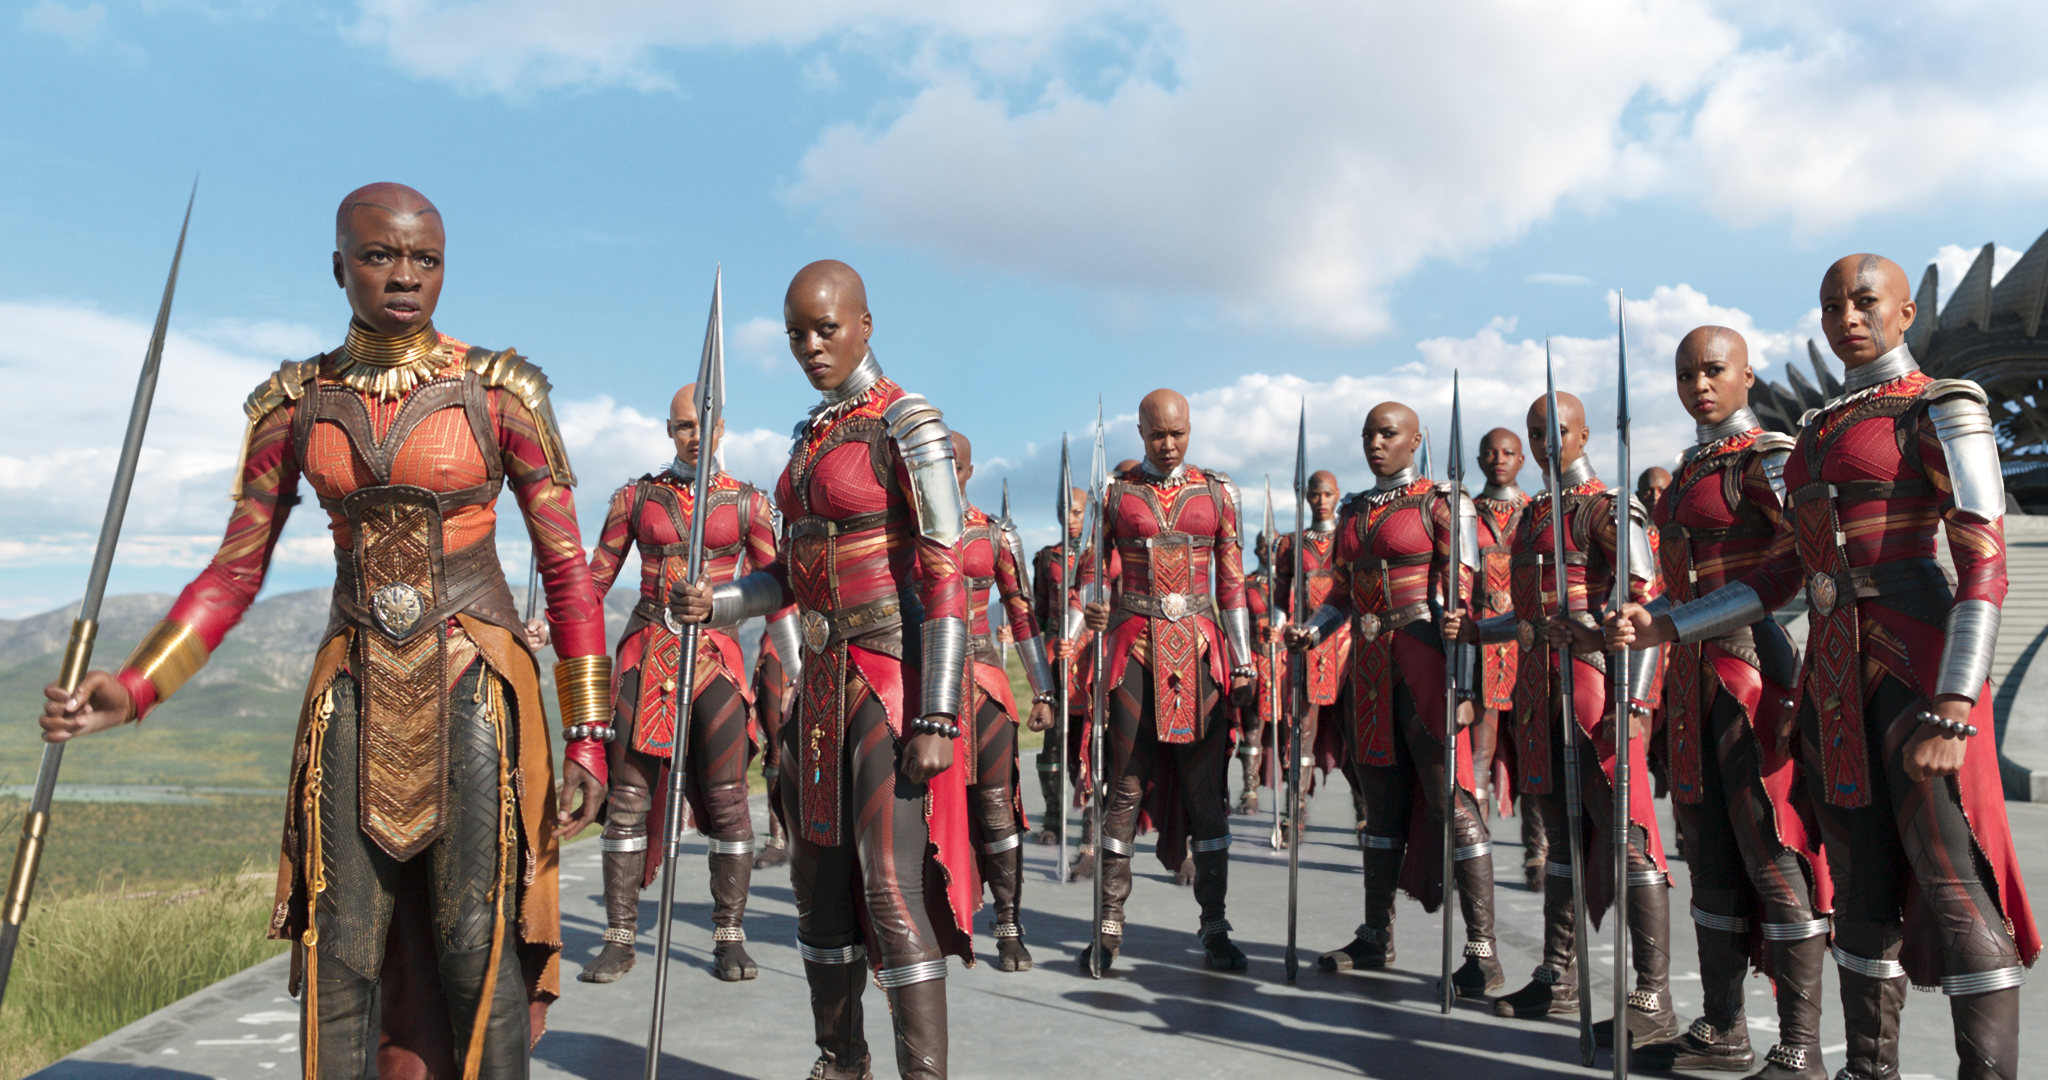 The Woman of Wakanda Were the real black superheroes of Black Panther